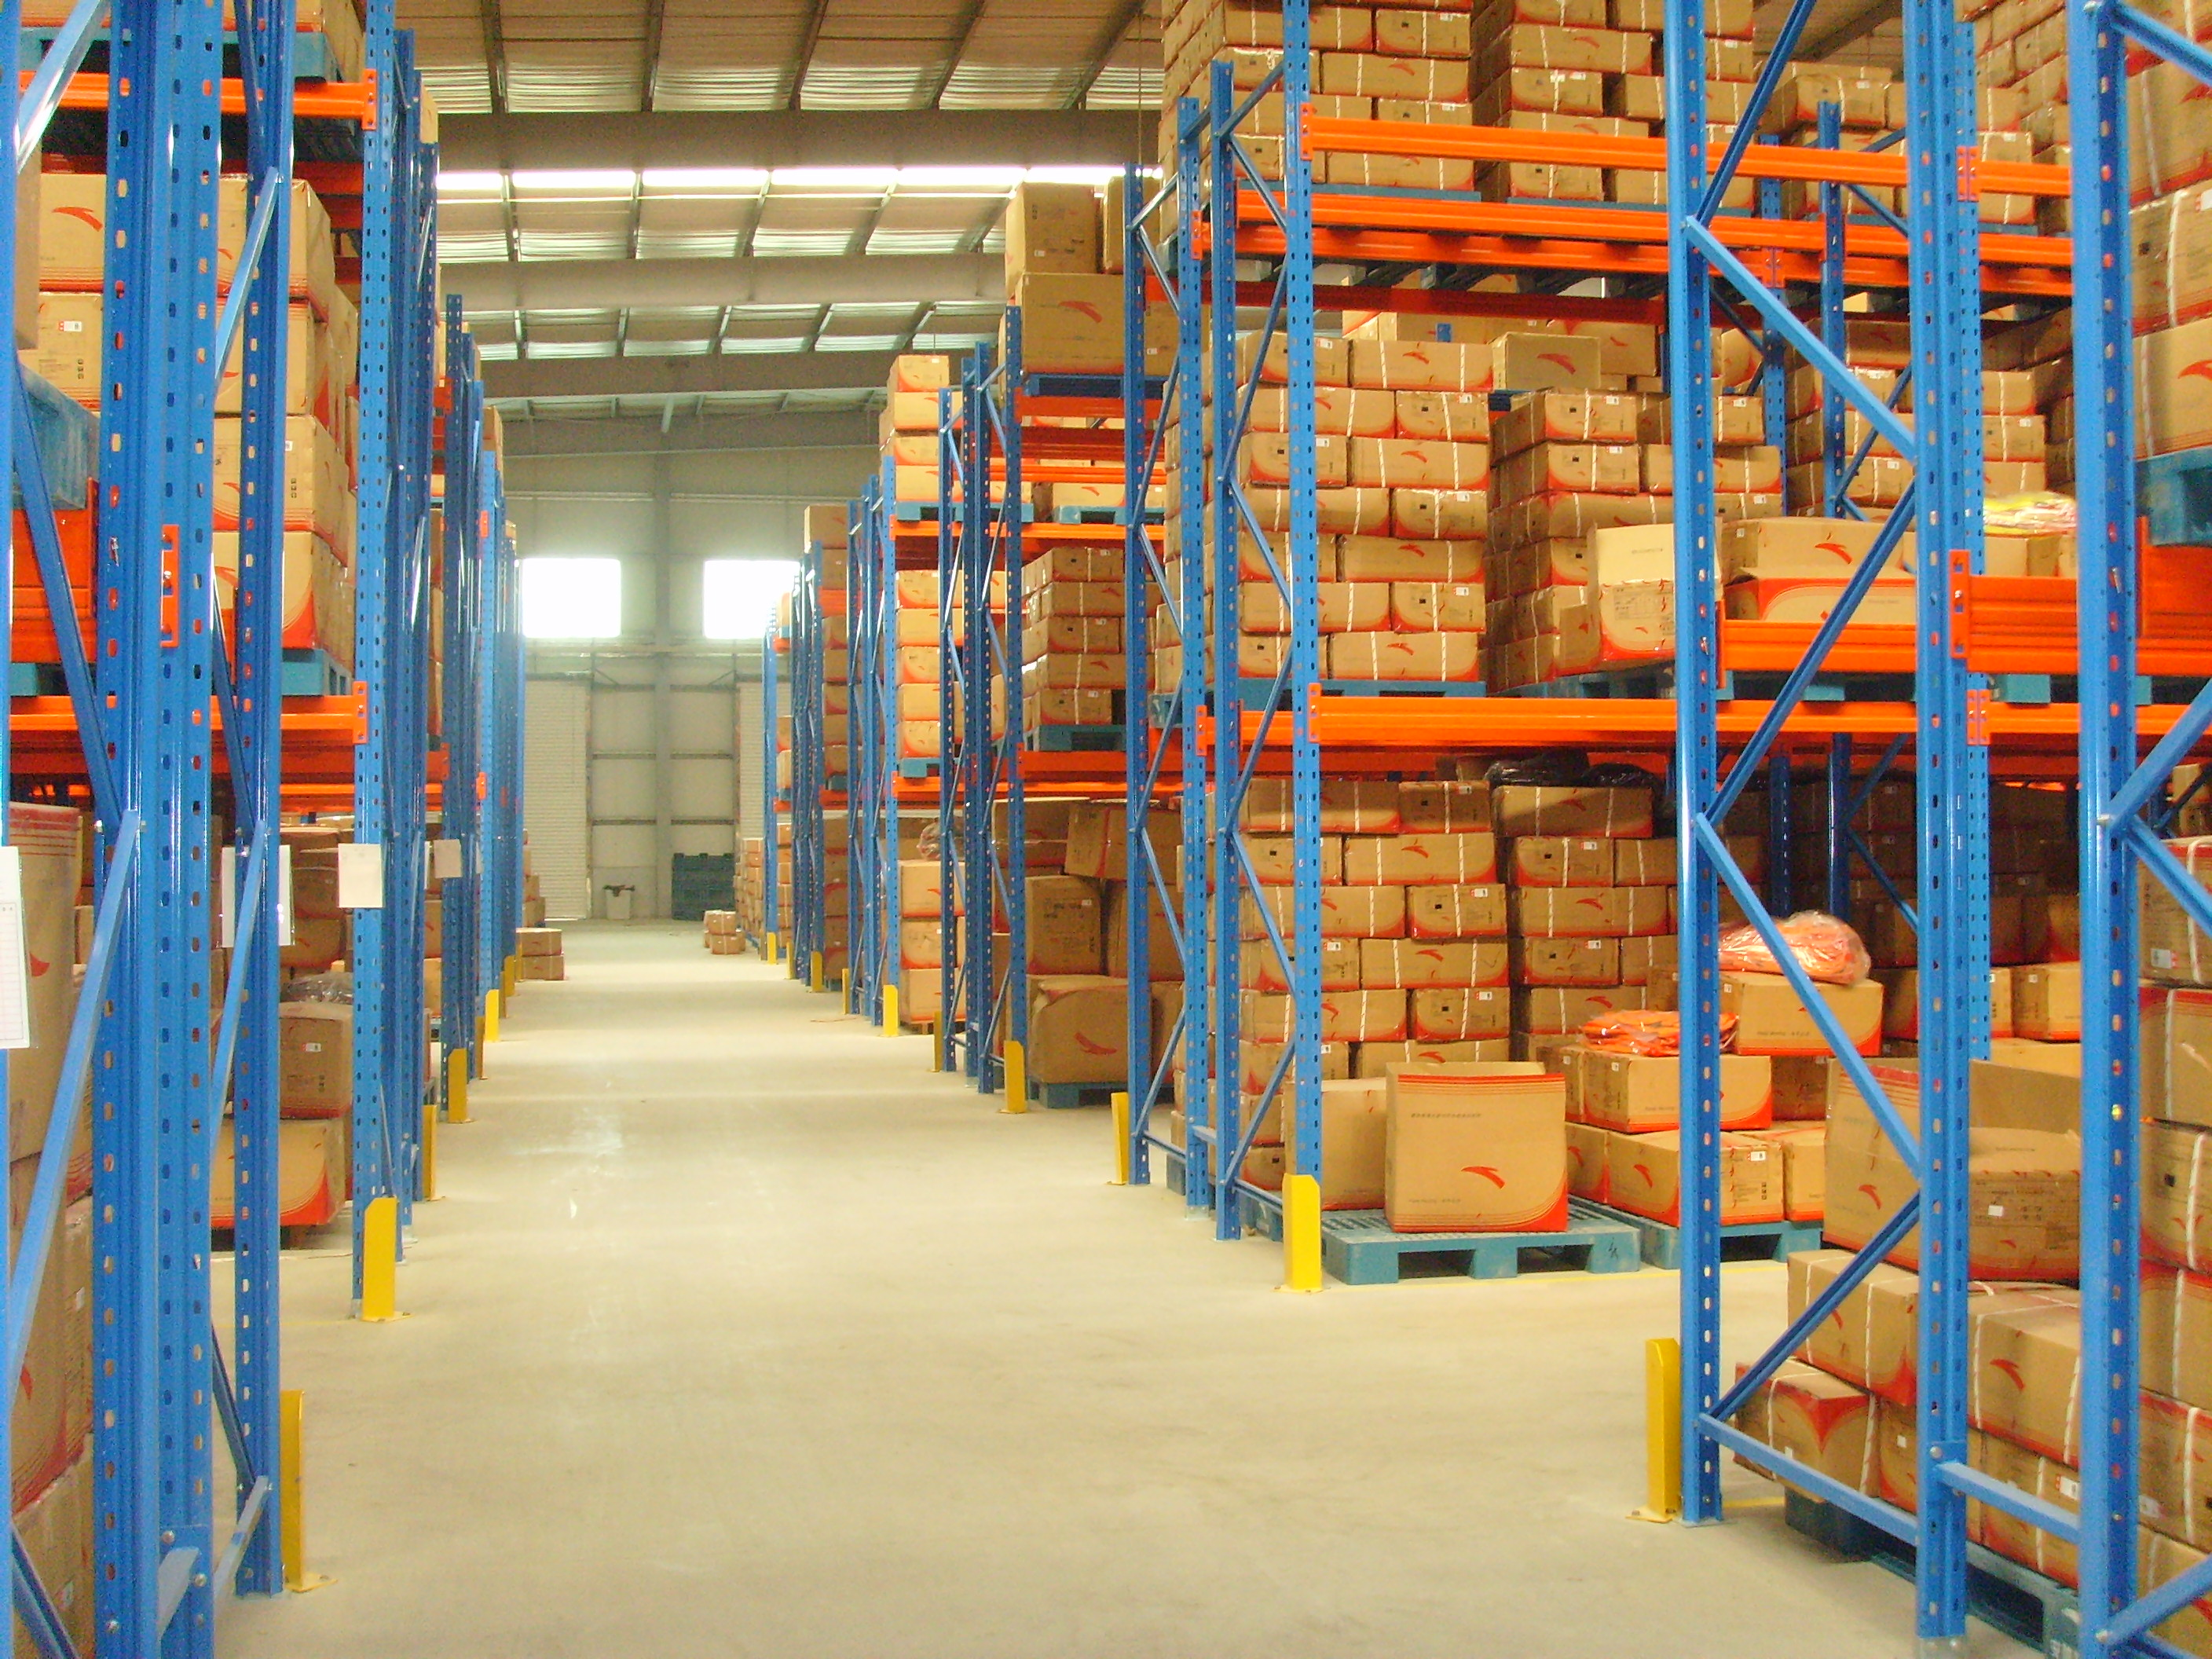 How to improve the utilization of warehouse space for pallet racking?